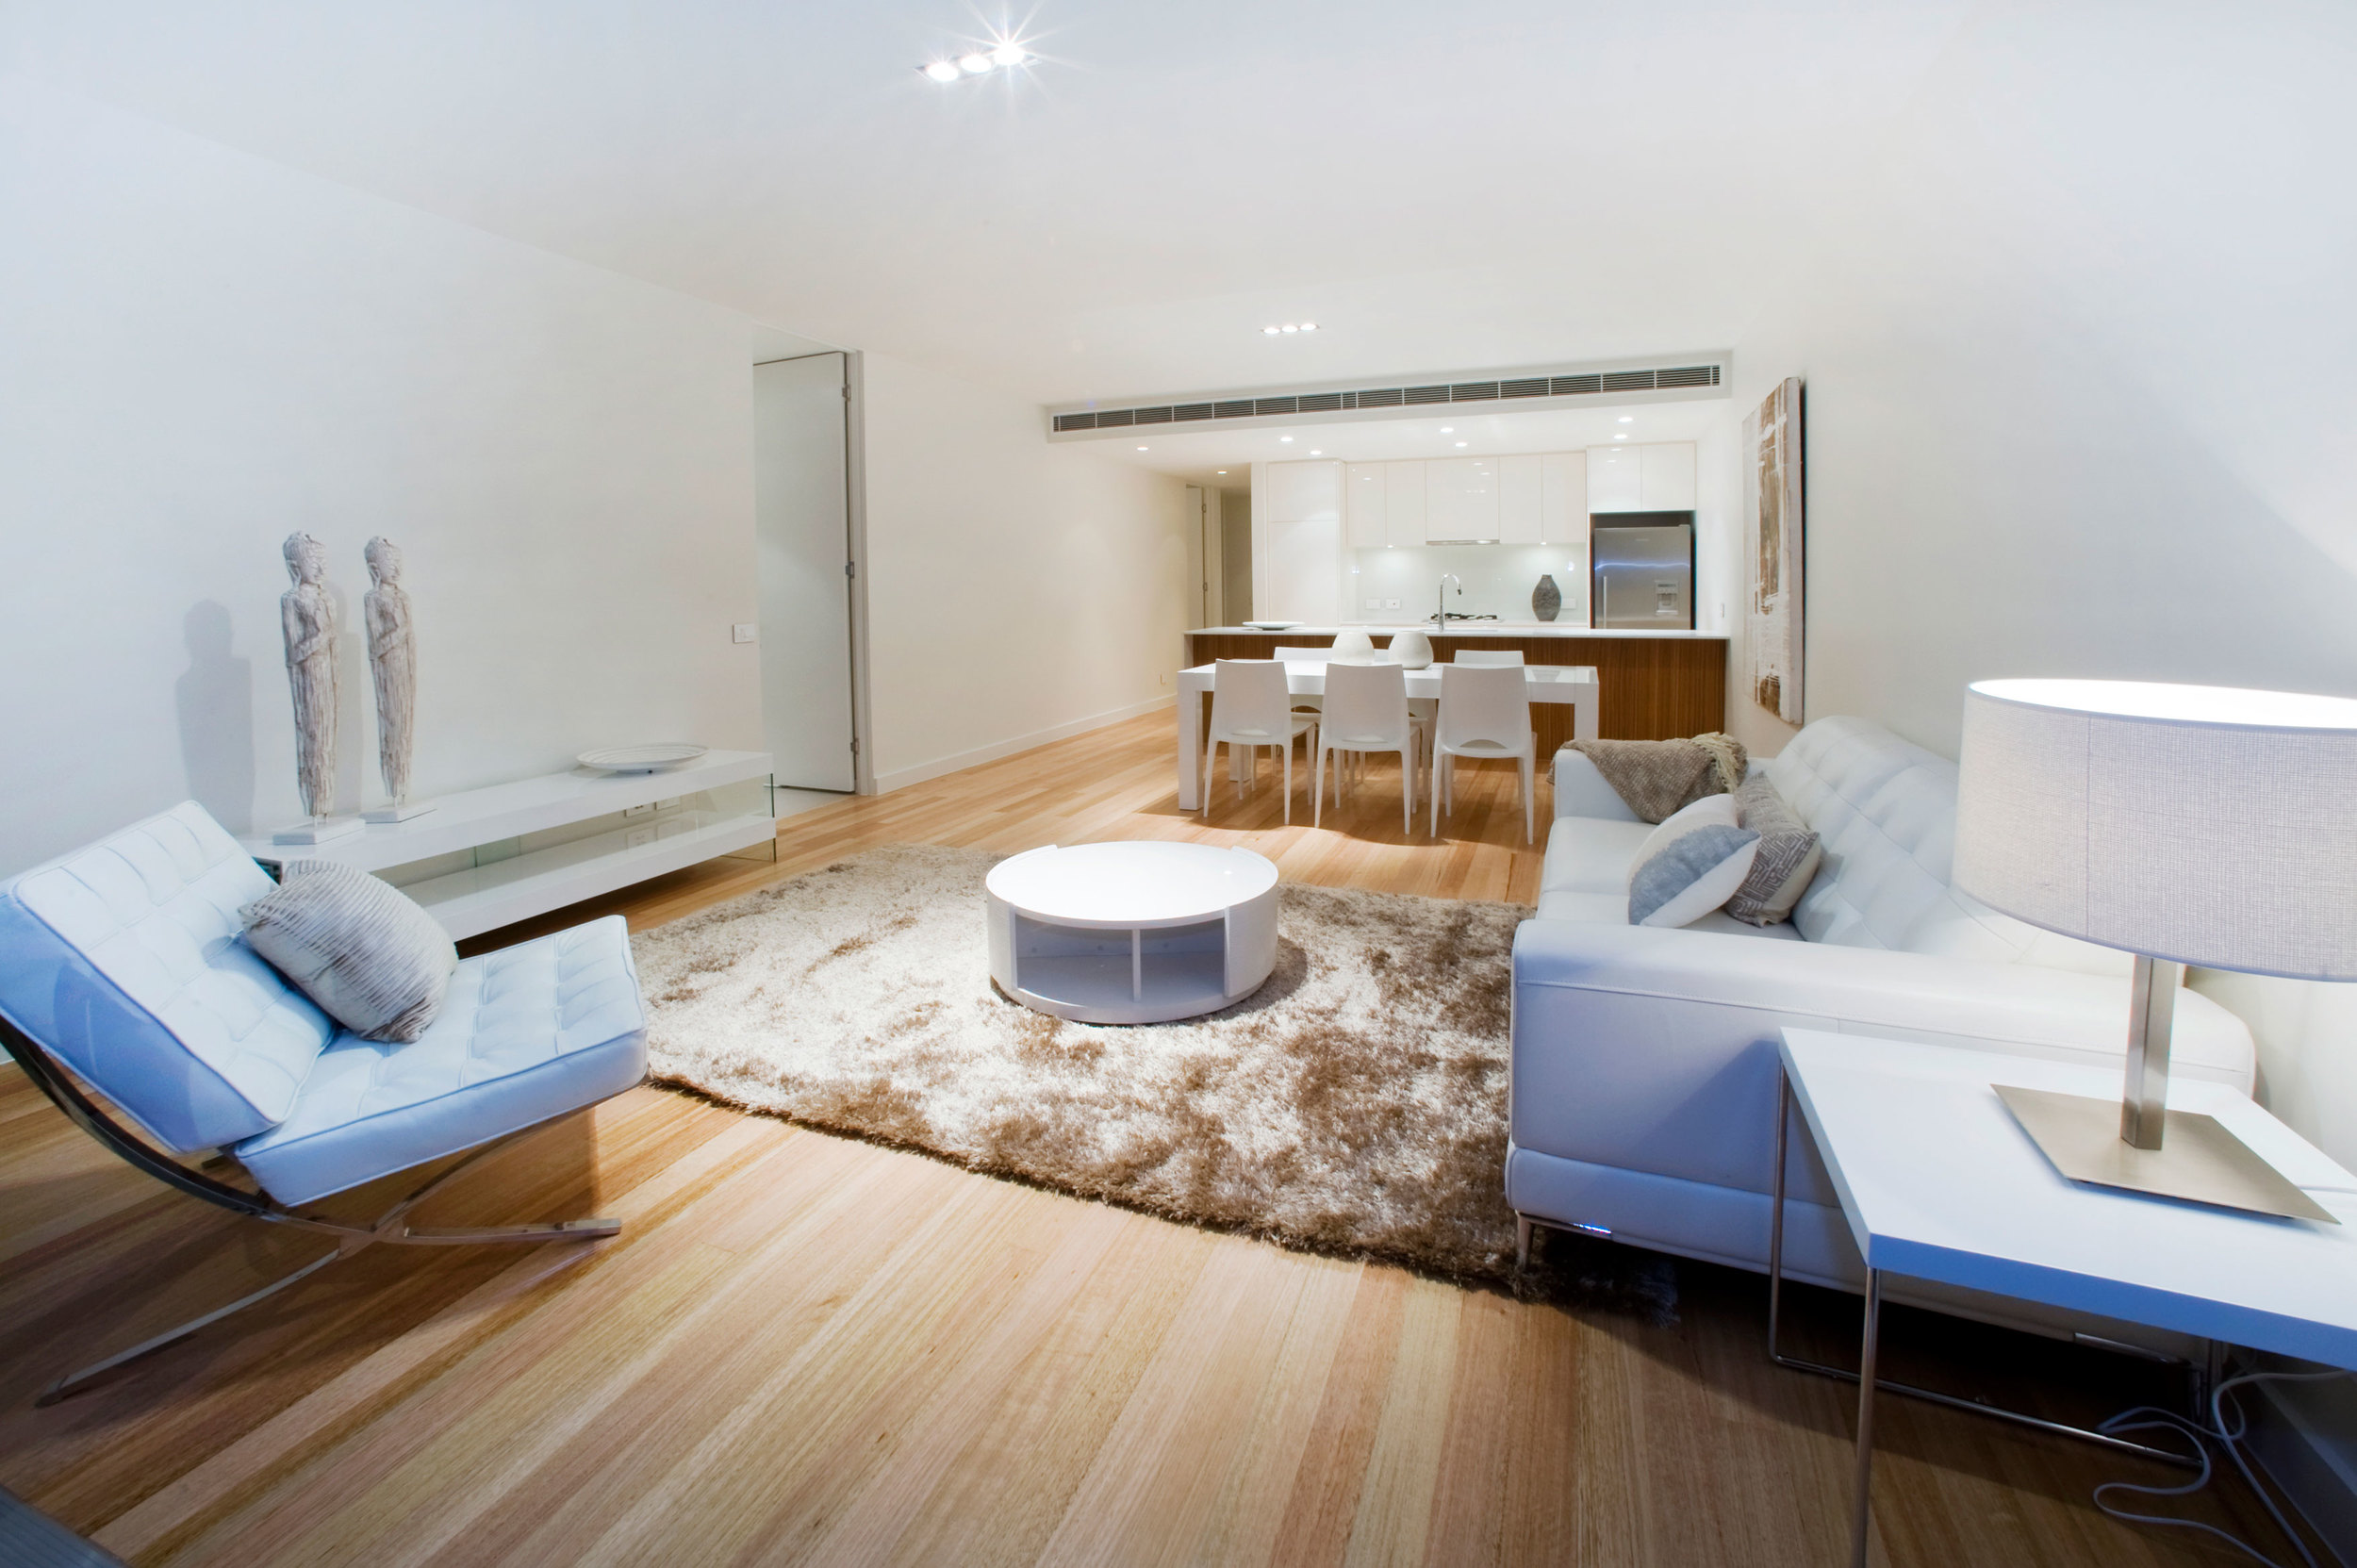 Light-filled, volumous internal spaces parade a sense of refined luxury